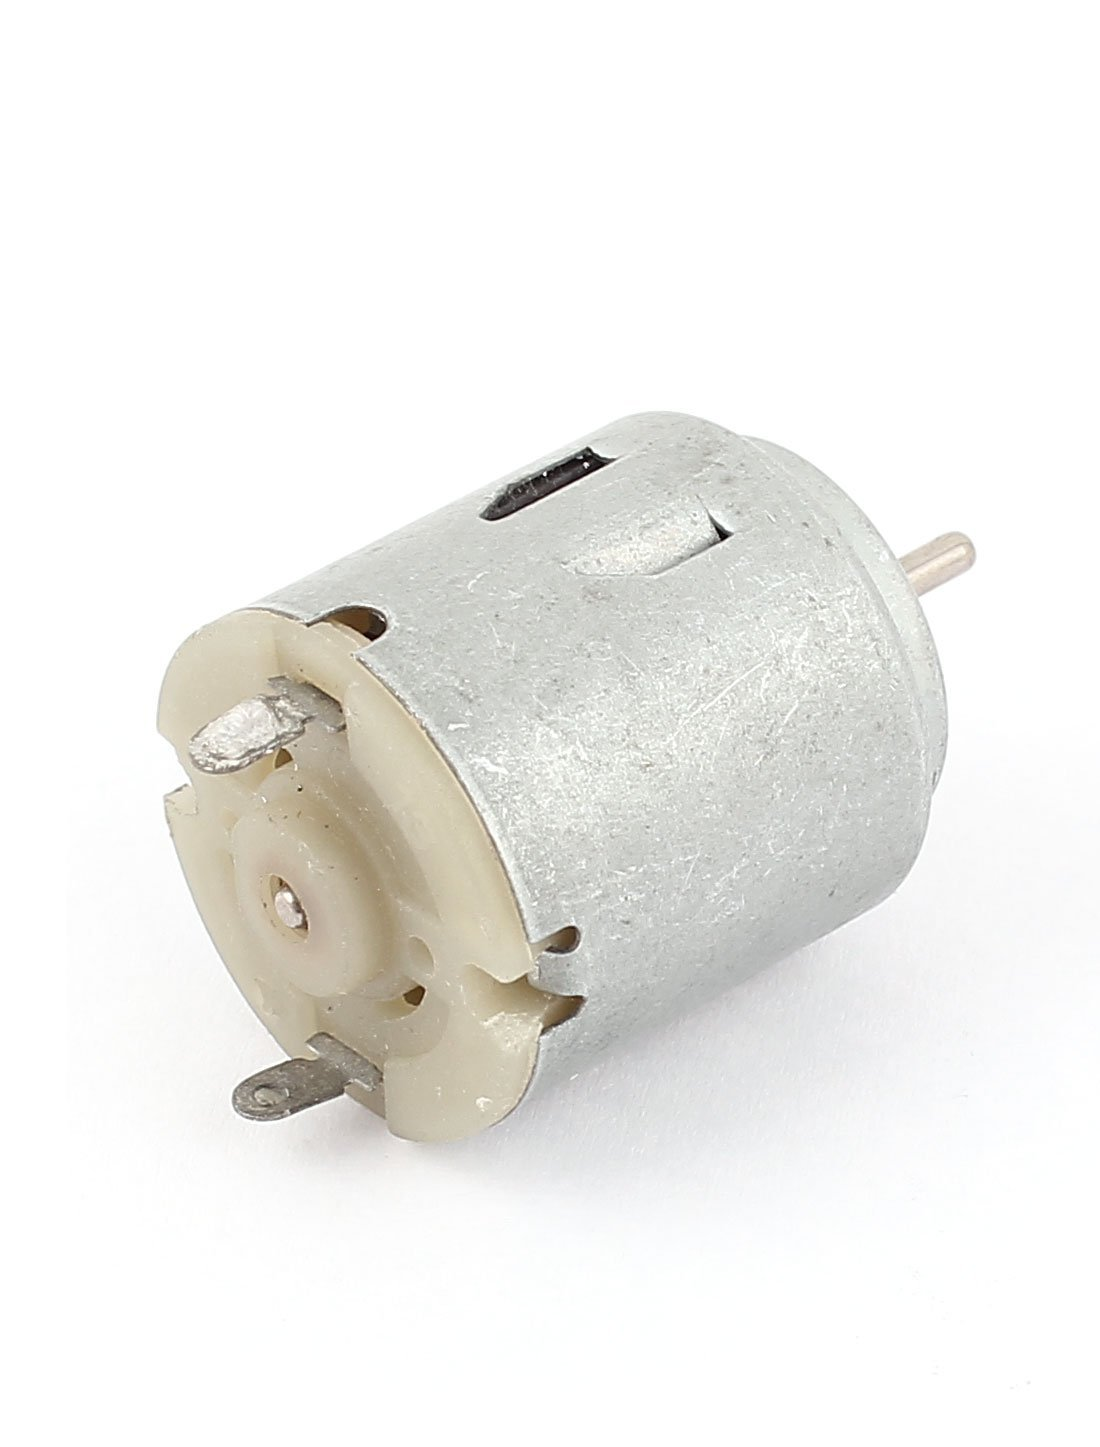 eDealMax R260 de 24 mm (diámetro) x27mm (H) DC 3V-12V 20000RPM Micro Motor para Massager - - Amazon.com